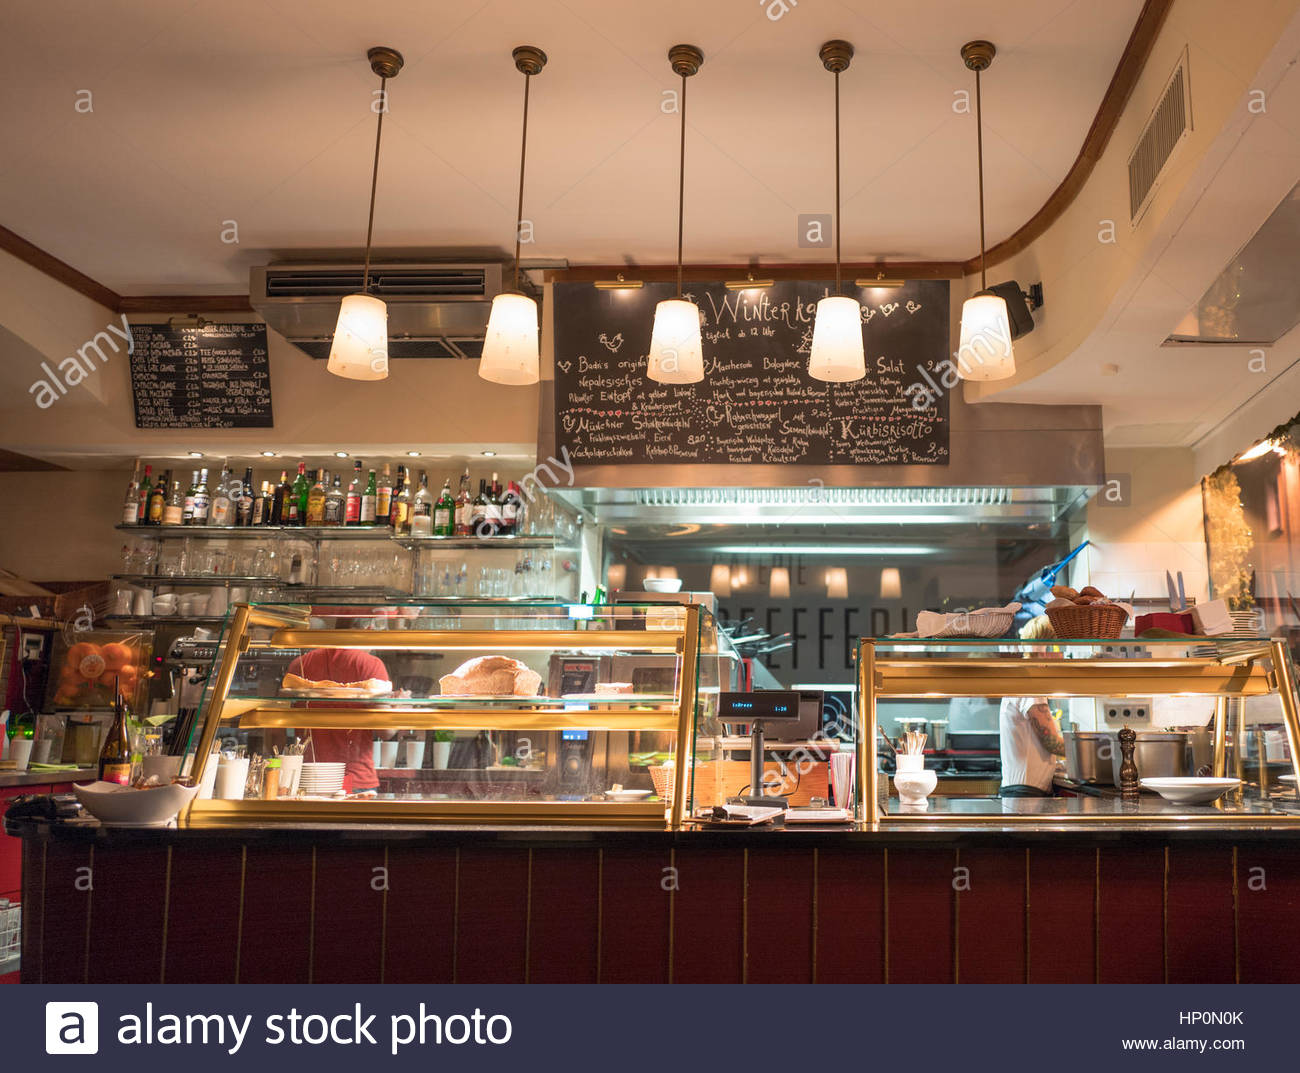 Interior cafe Bakery Display Cabinet Restaurant Stock Photo ...